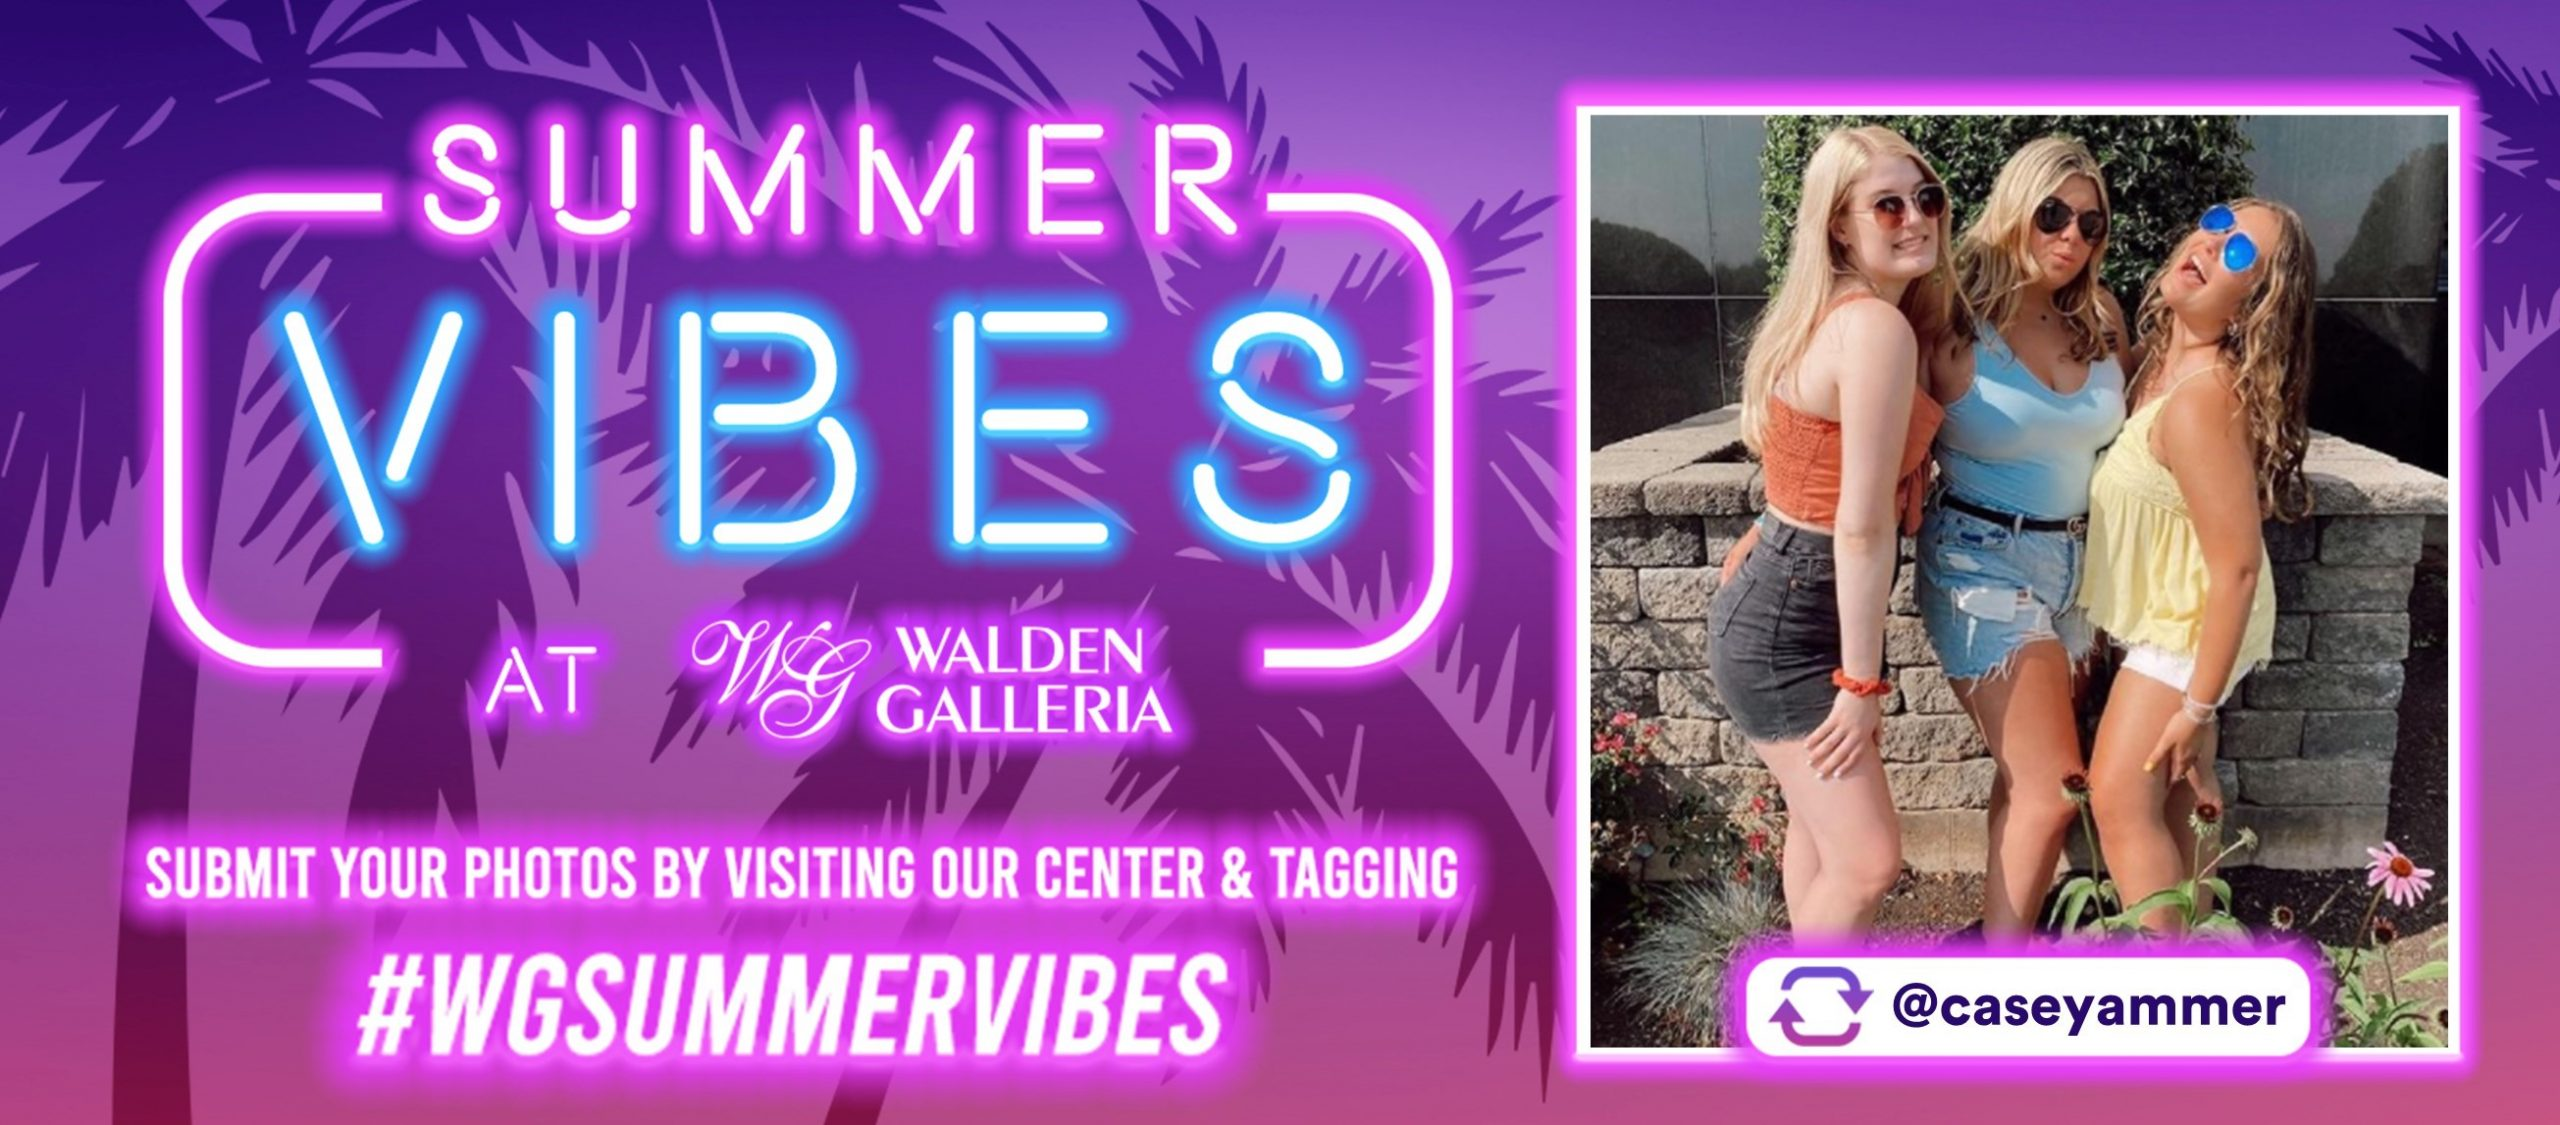 Summer Vibes Blog Page Post